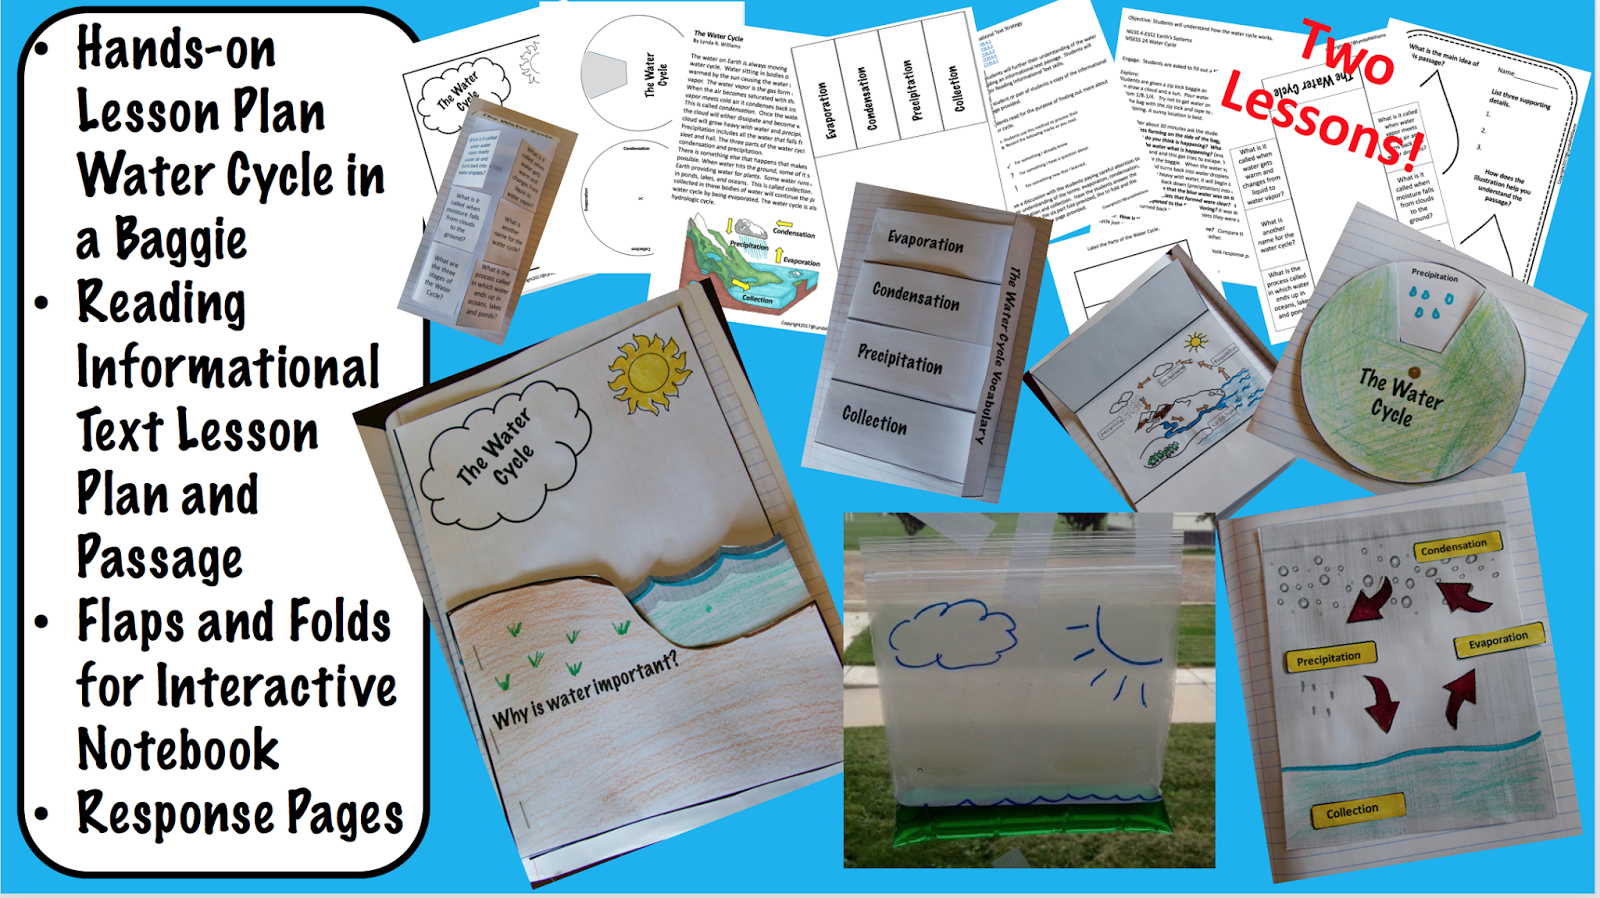 Purchase In A Bundle With Other Exciting Lessons And Save 20 Water Cycle Bundle 20 Off